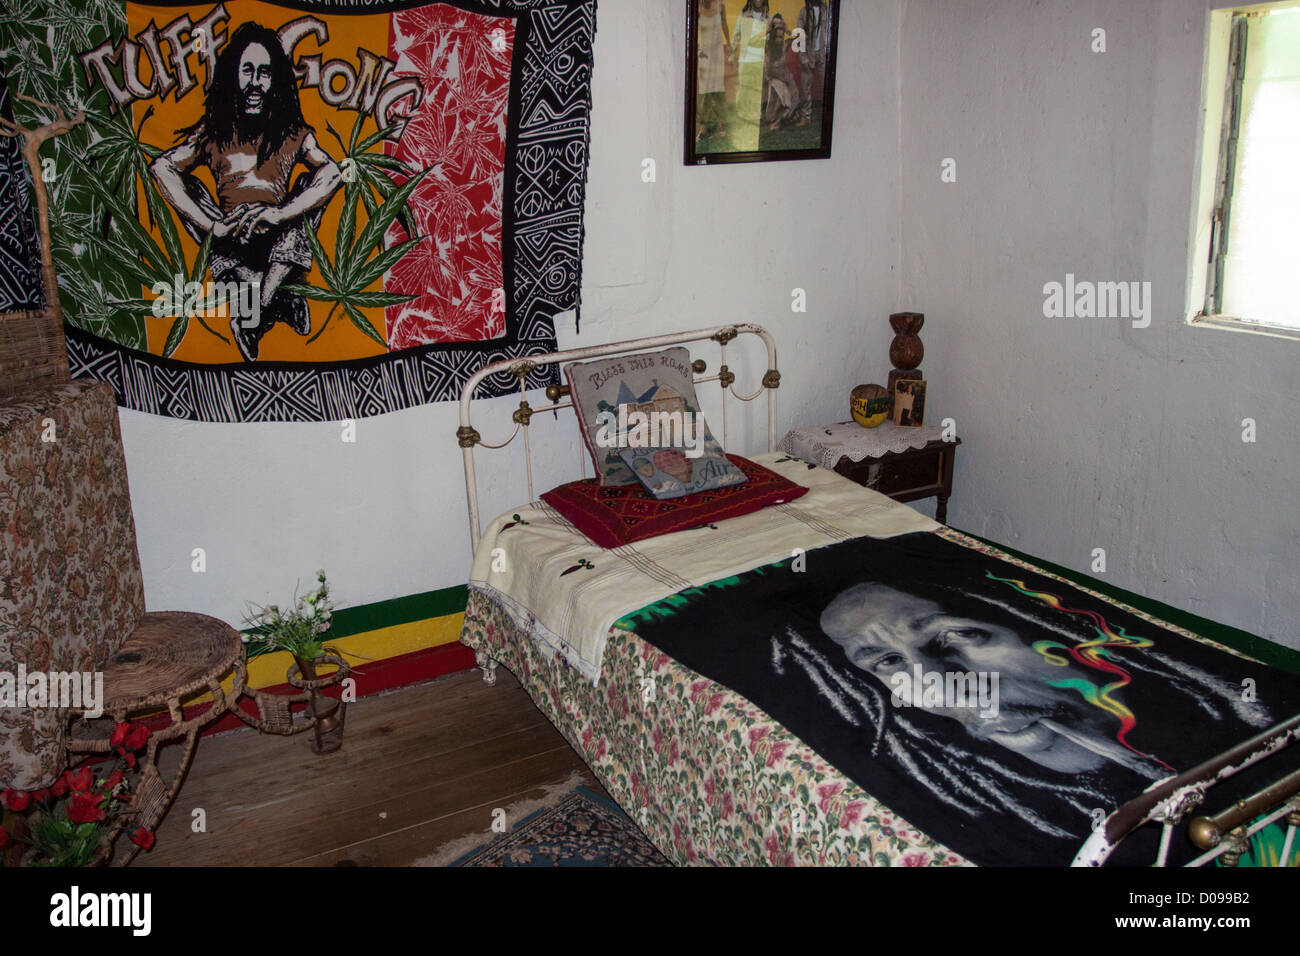 JAMAICAN REGGAE MUSICIAN BOB MARLEYu0027S (1945 1981) BEDROOM AS CHILD WHEN HE  LIVED HIS GRANDMOTHER BOB MARLEY CENTRE MAUSOLEUM